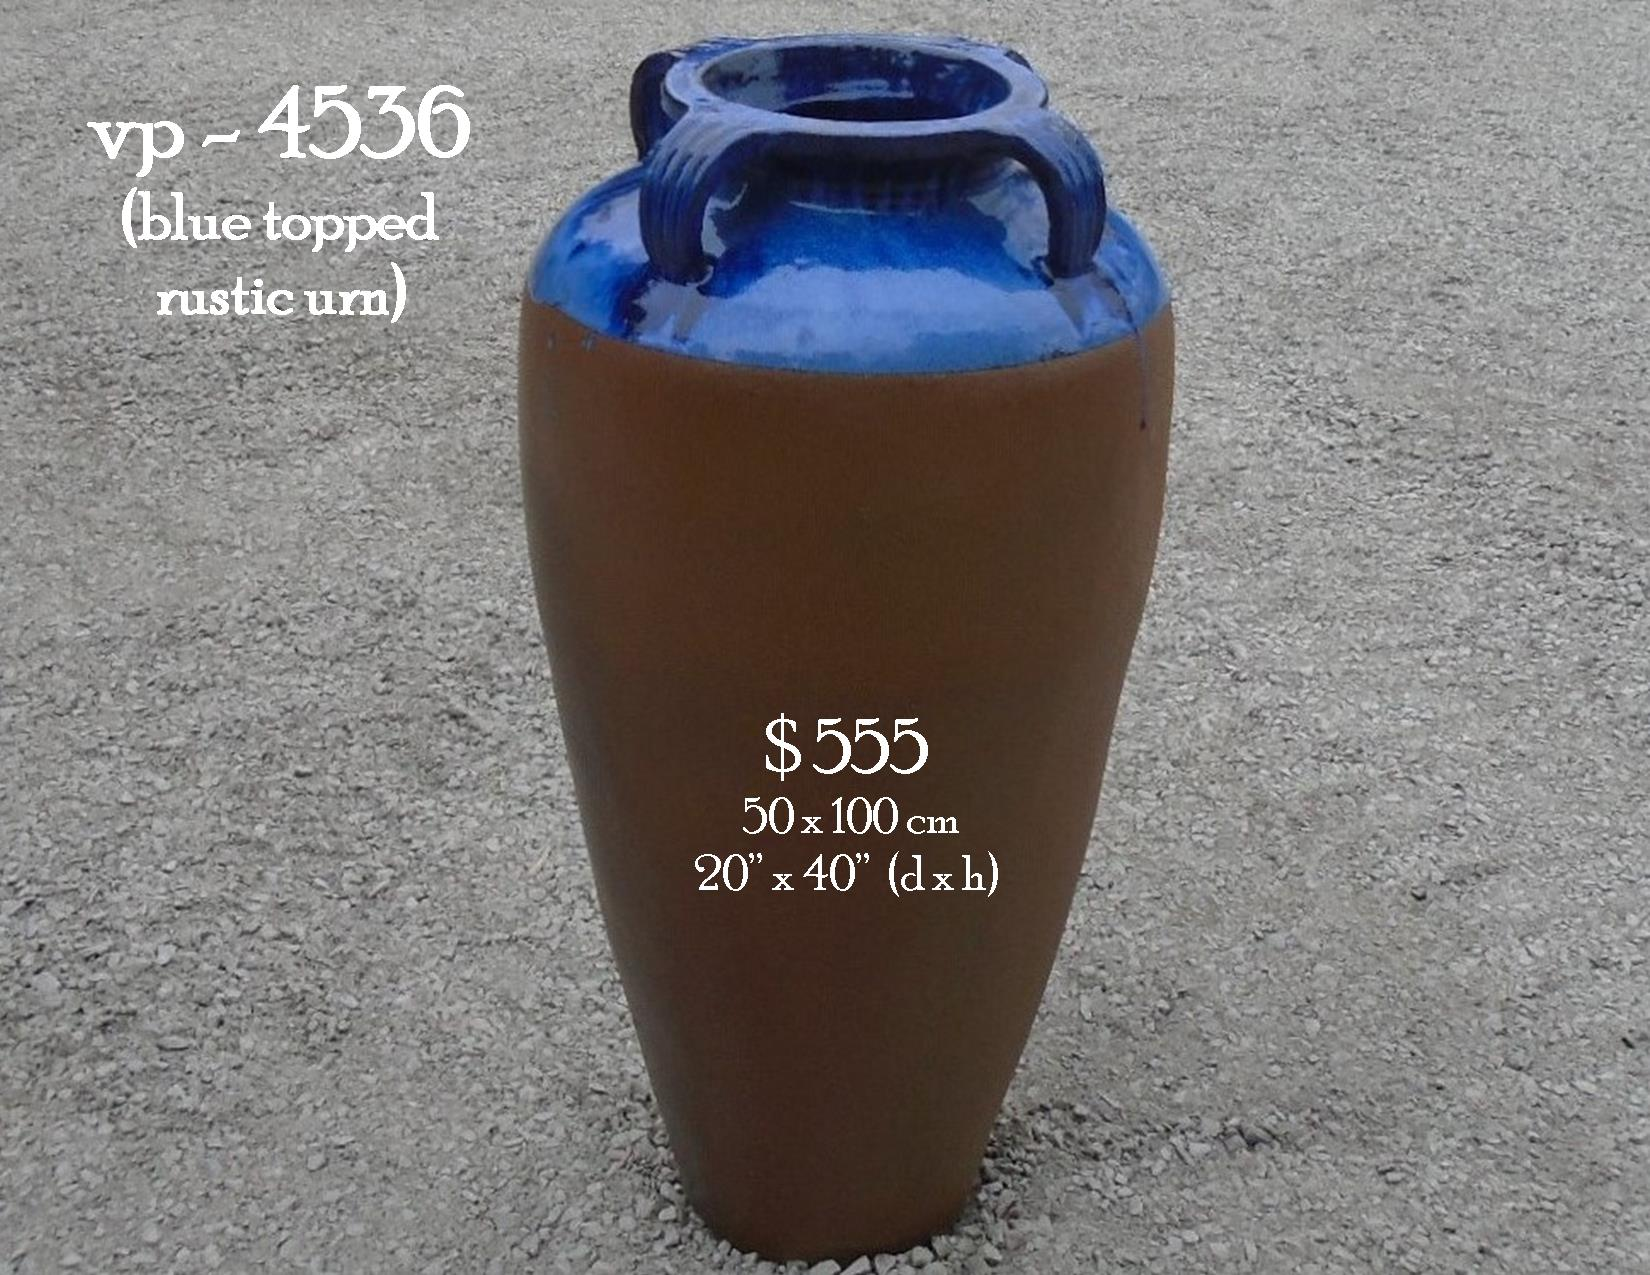 vp - 4536  blue top rustic urn